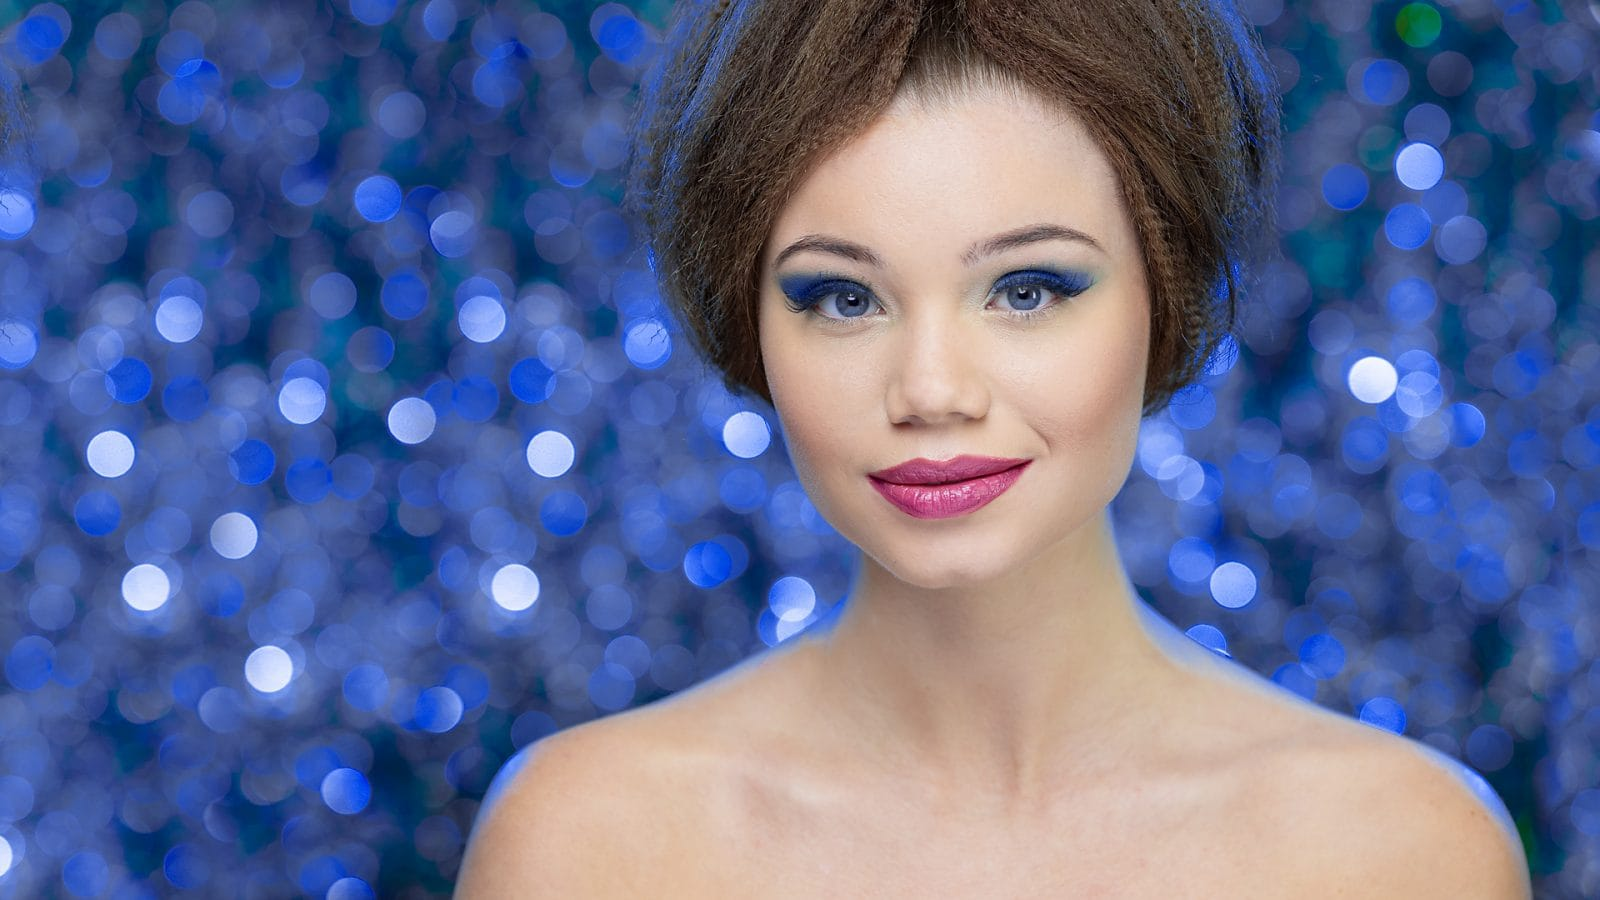 Model in front of blue bokeh background with bare shoulders